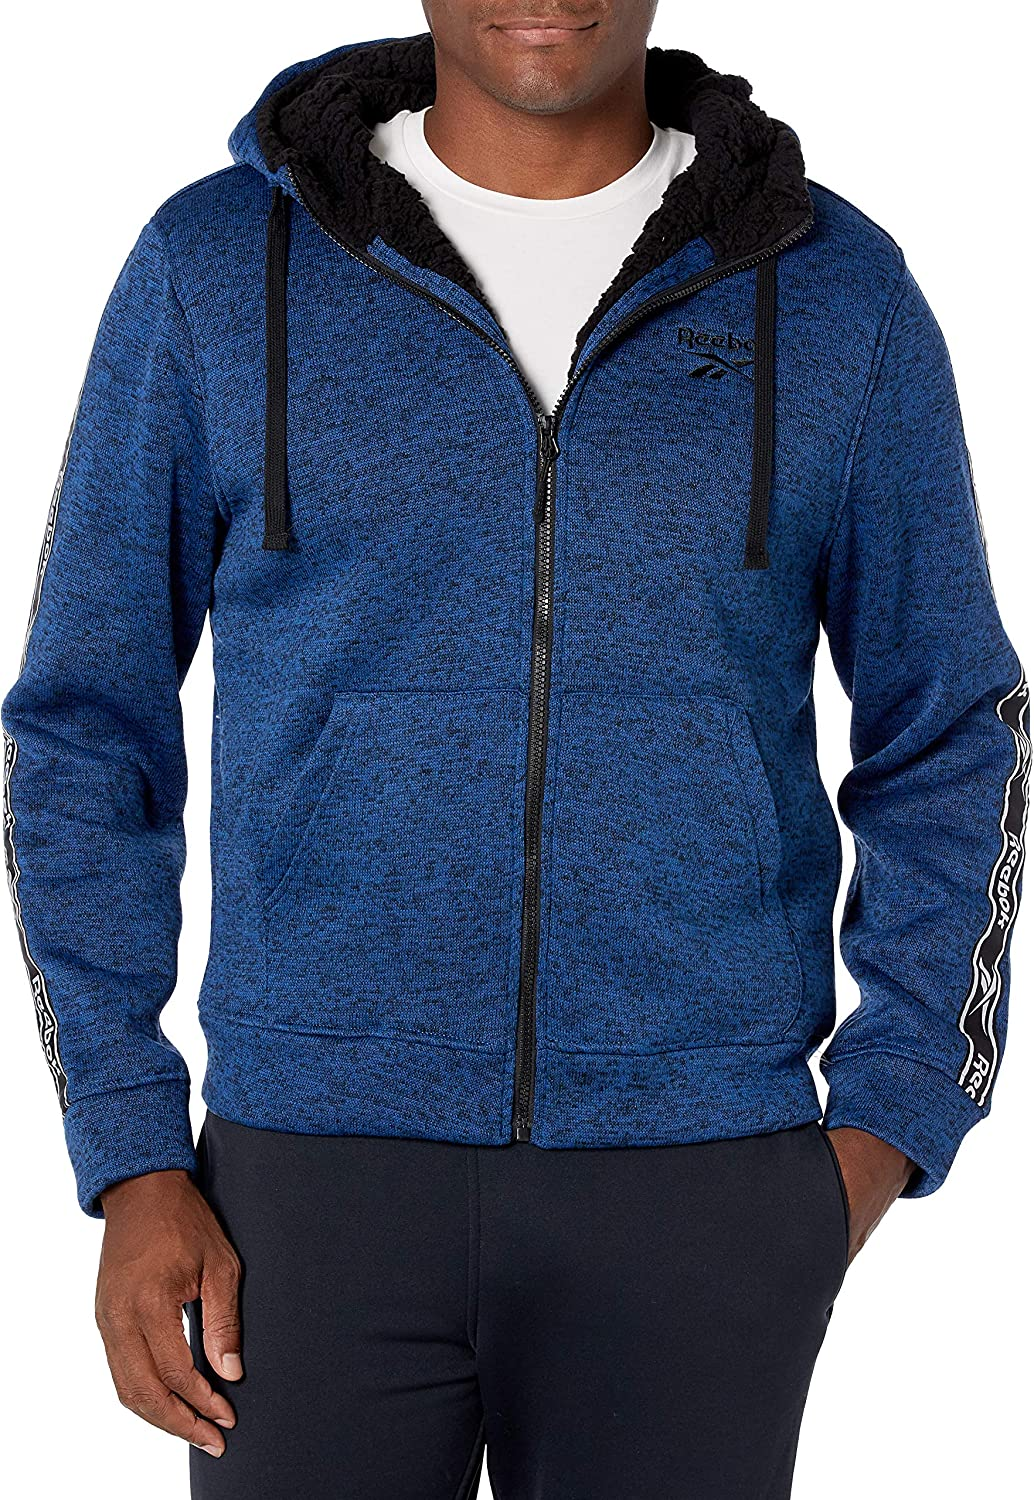 Reebok Men's Regular Animer and price revision store Soft Woven Jacket